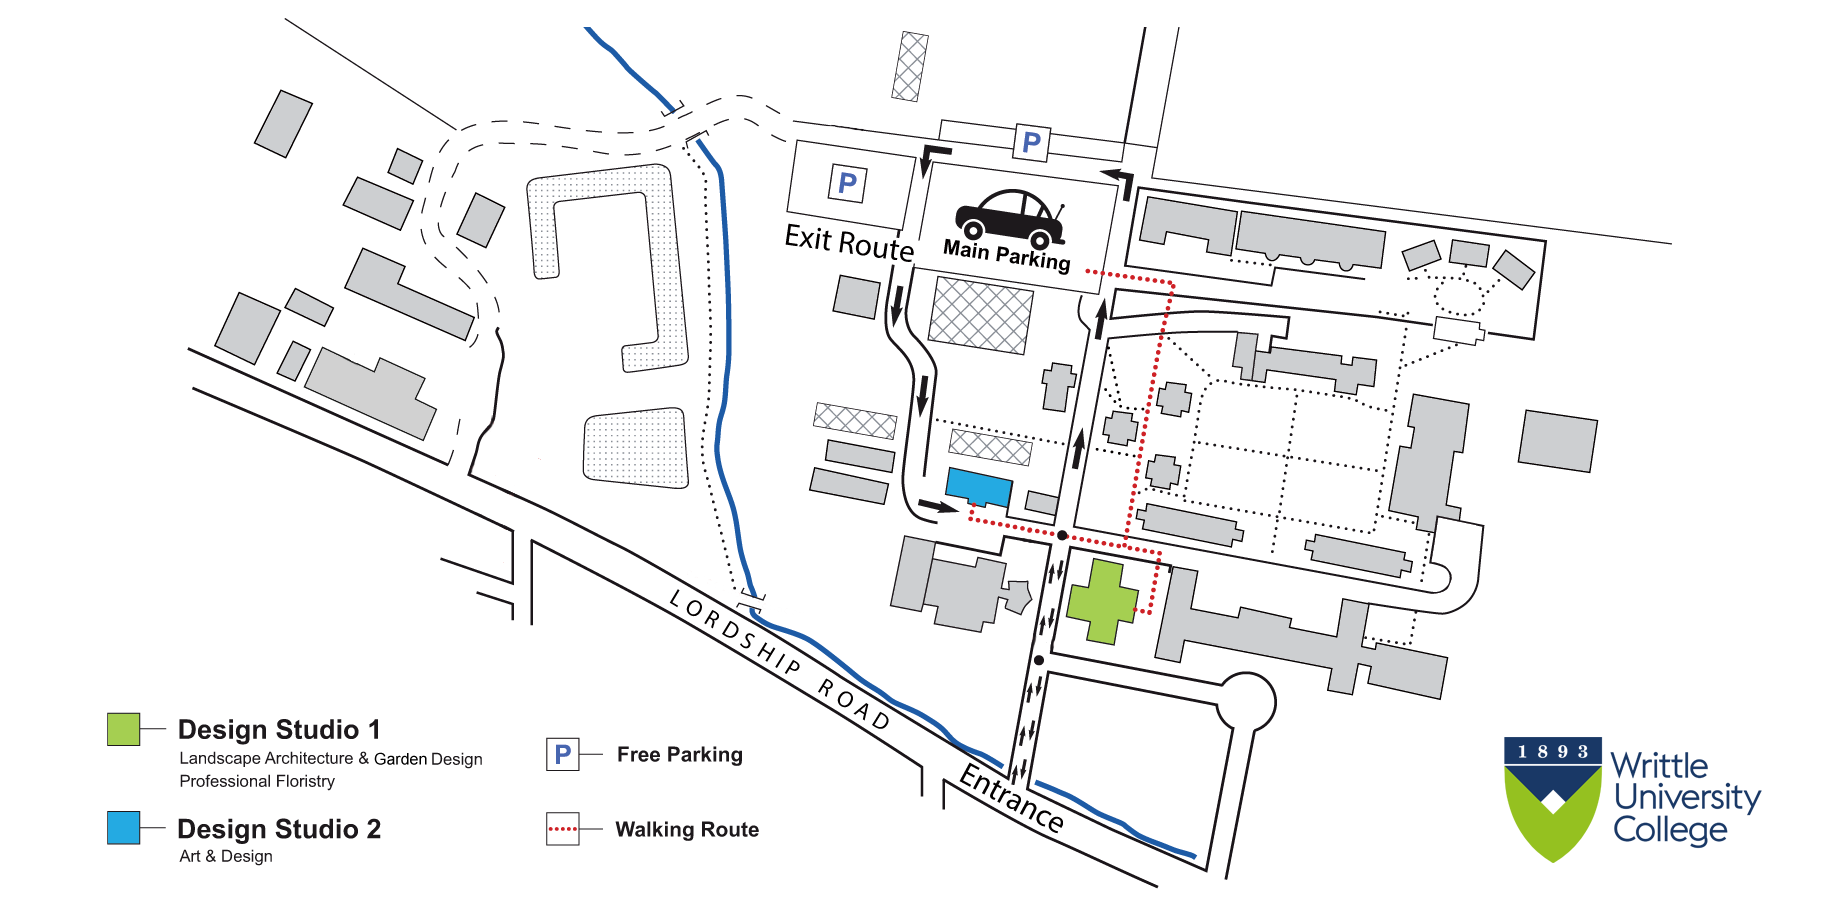 Writtle University College Campus map